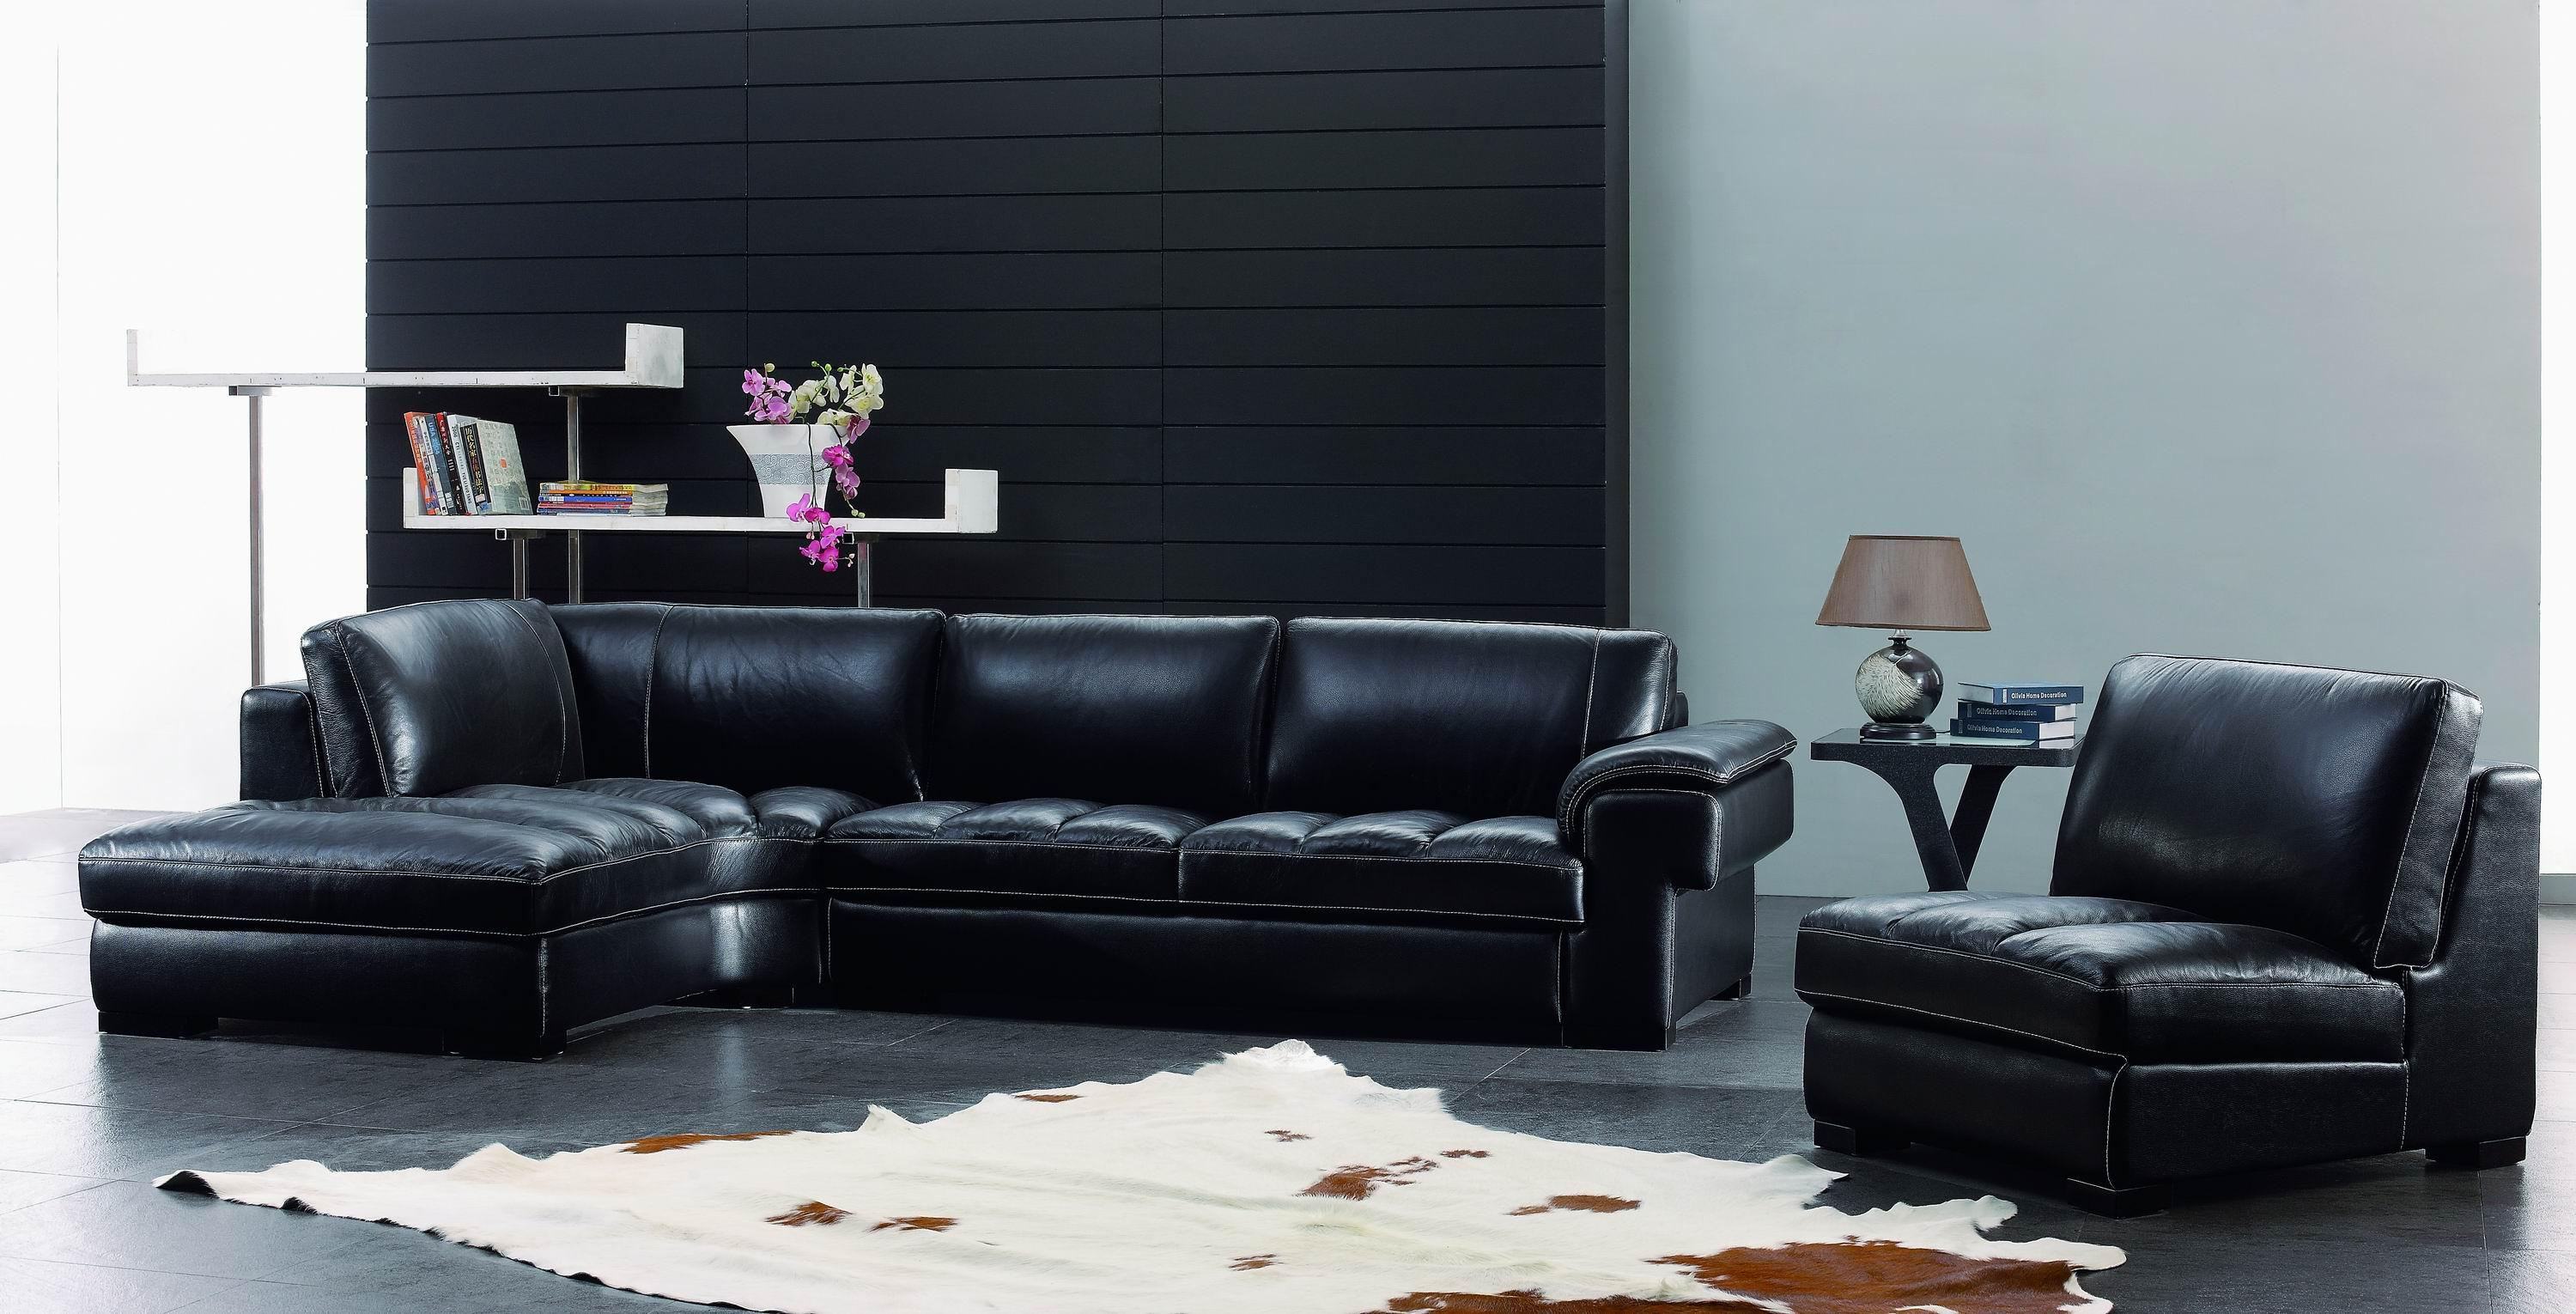 modern dark living room furniture set black leather sofa ideas photos 15